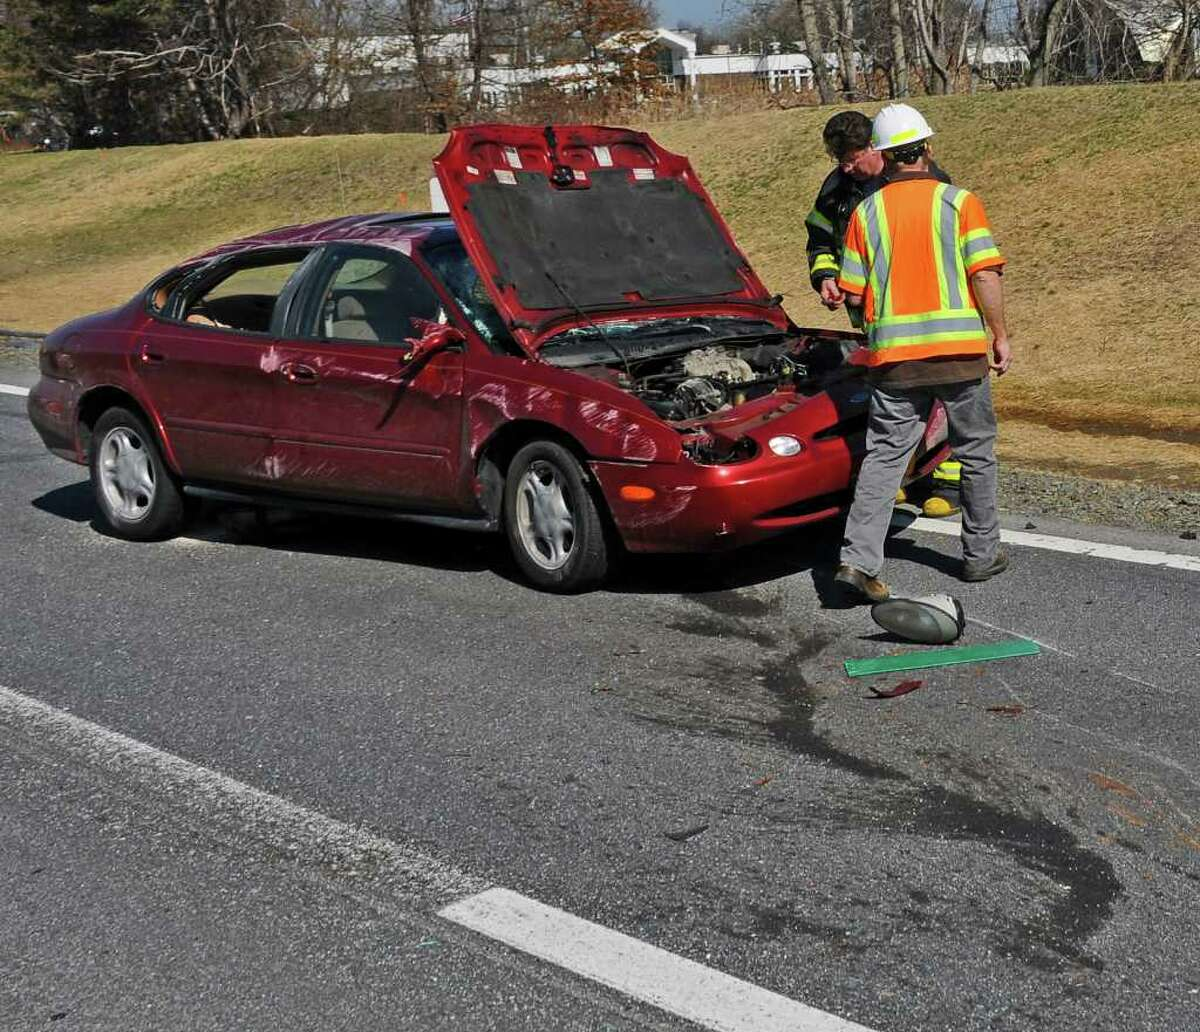 An accident on the northbound lane of the Thruway between exits 23 and 24 tied up traffic on Tuesday morning March 20, 2012 in Albany, N.Y. The car appears to have damaged jersey barriers on the road, where a construction project is underway. (Philip Kamrass / Times Union )